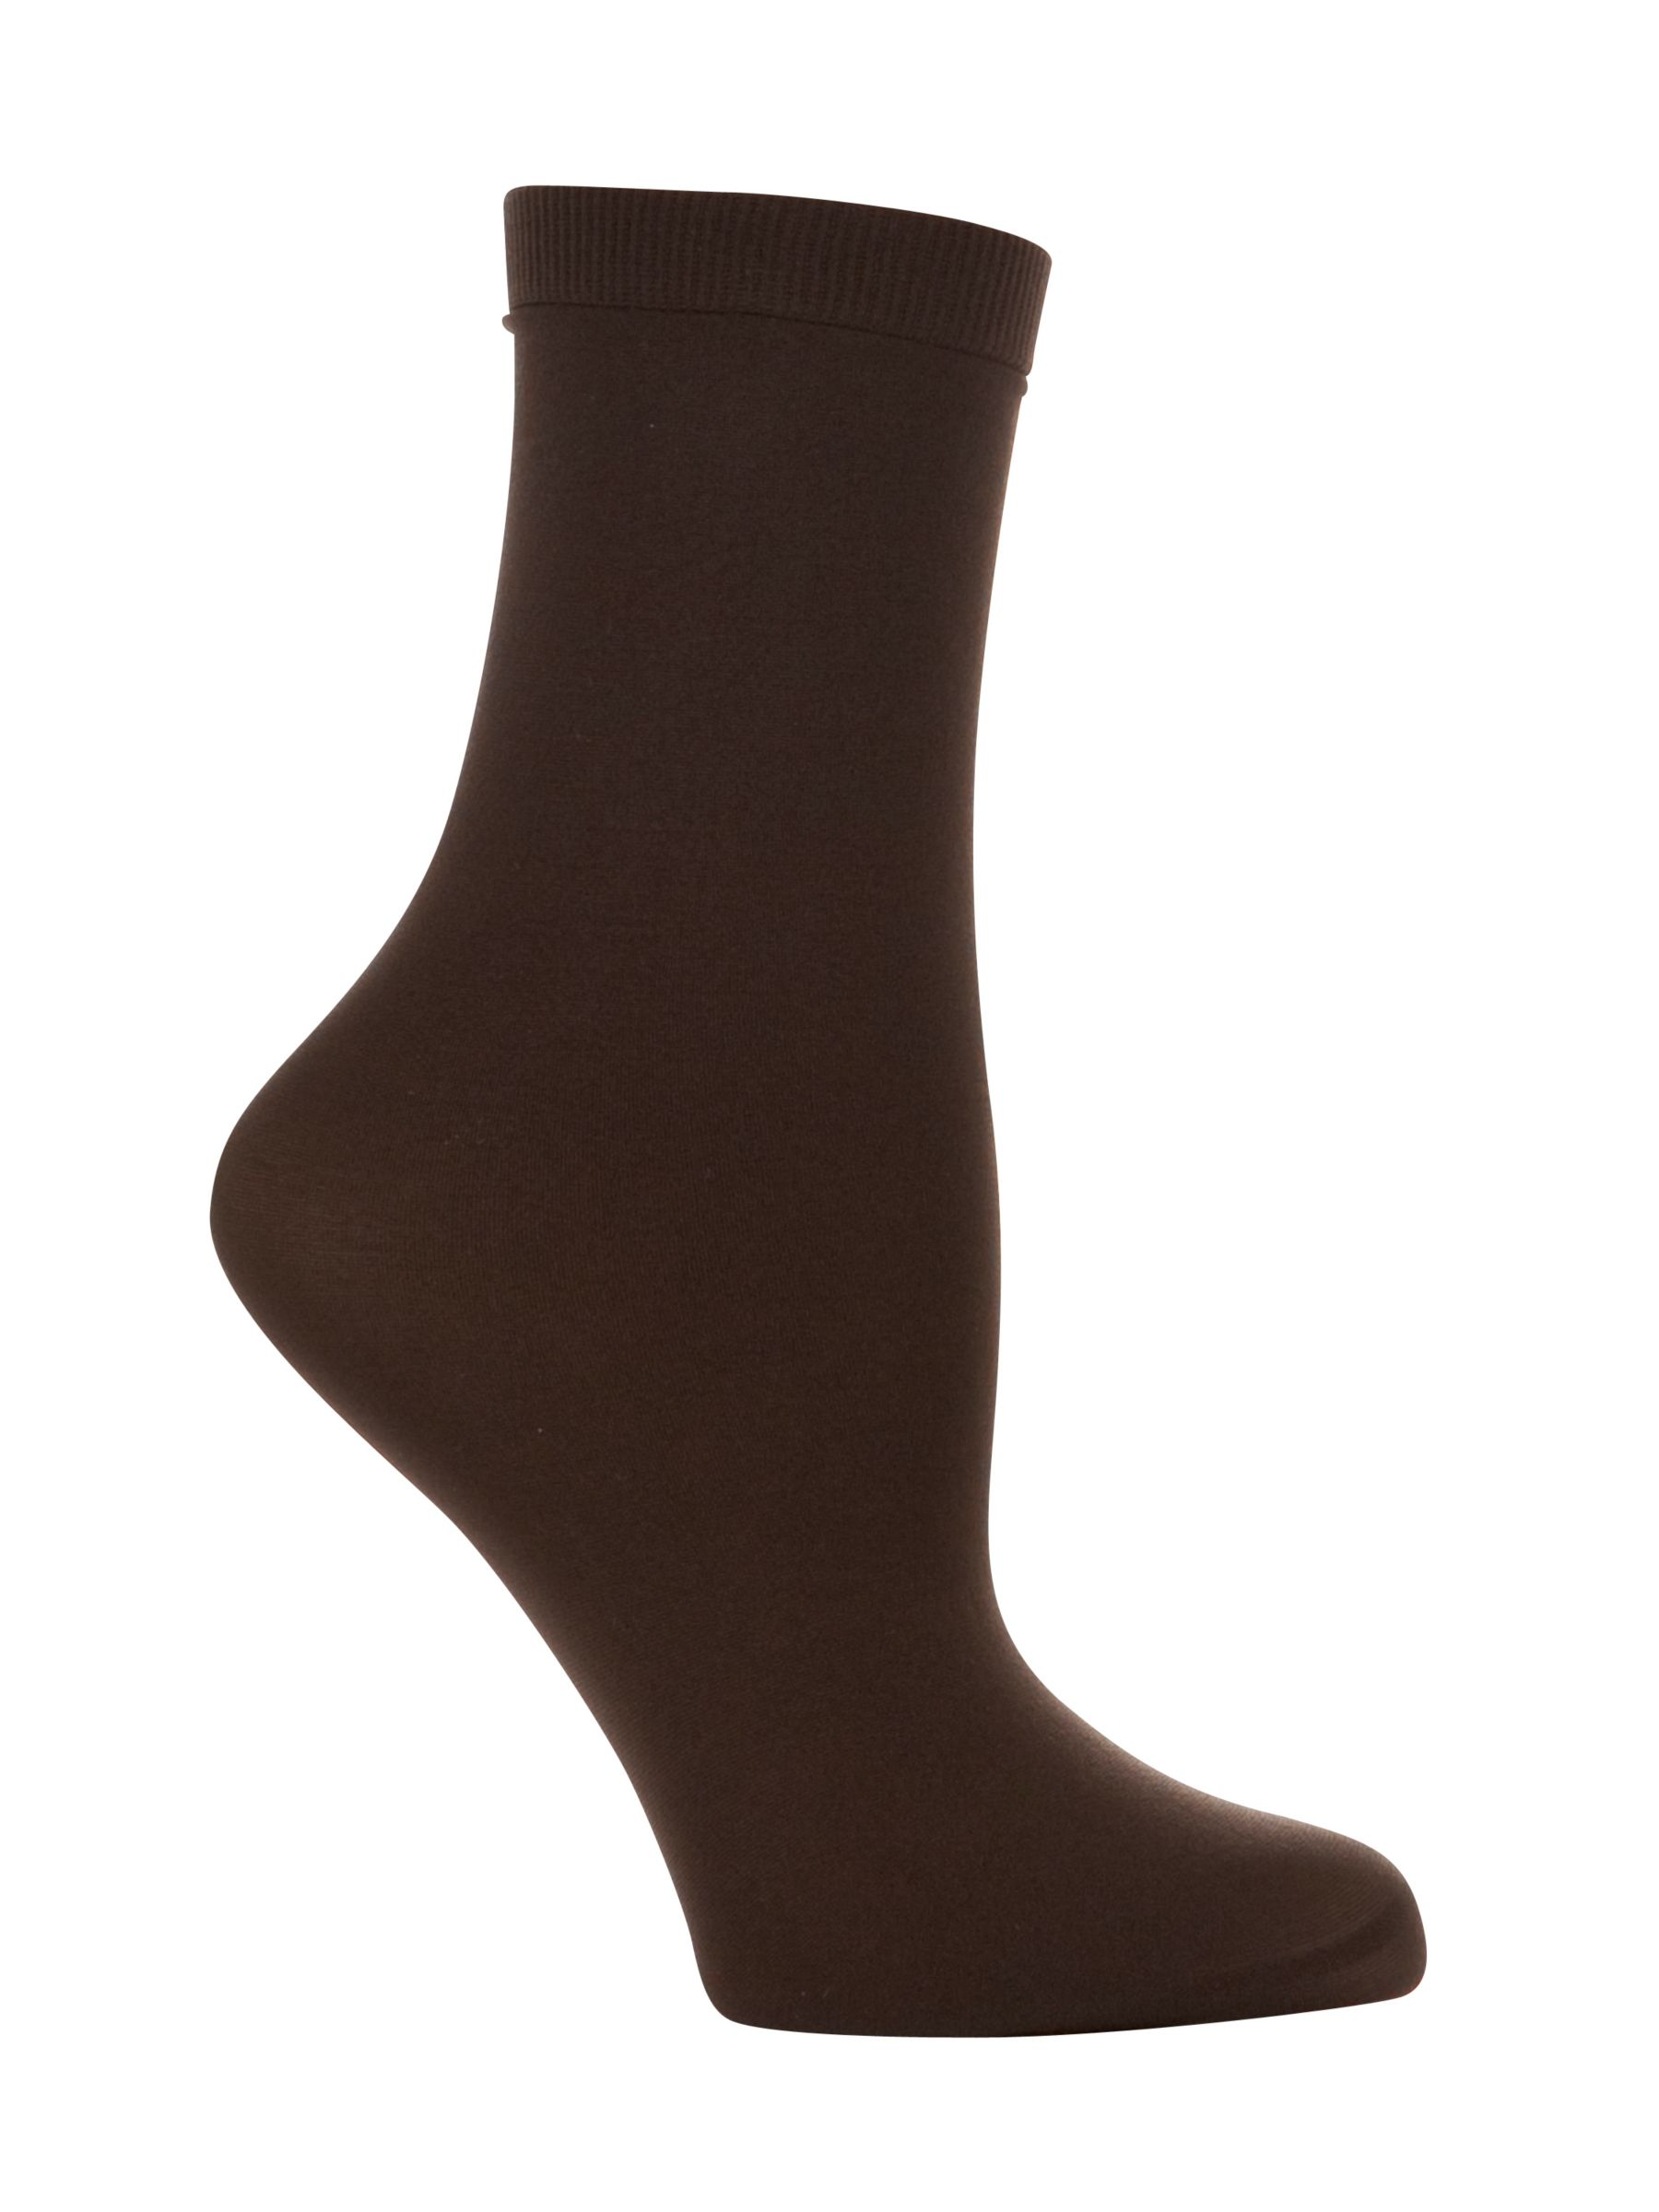 John Lewis 40 Denier Anklet Socks, Pack of 2, Bark